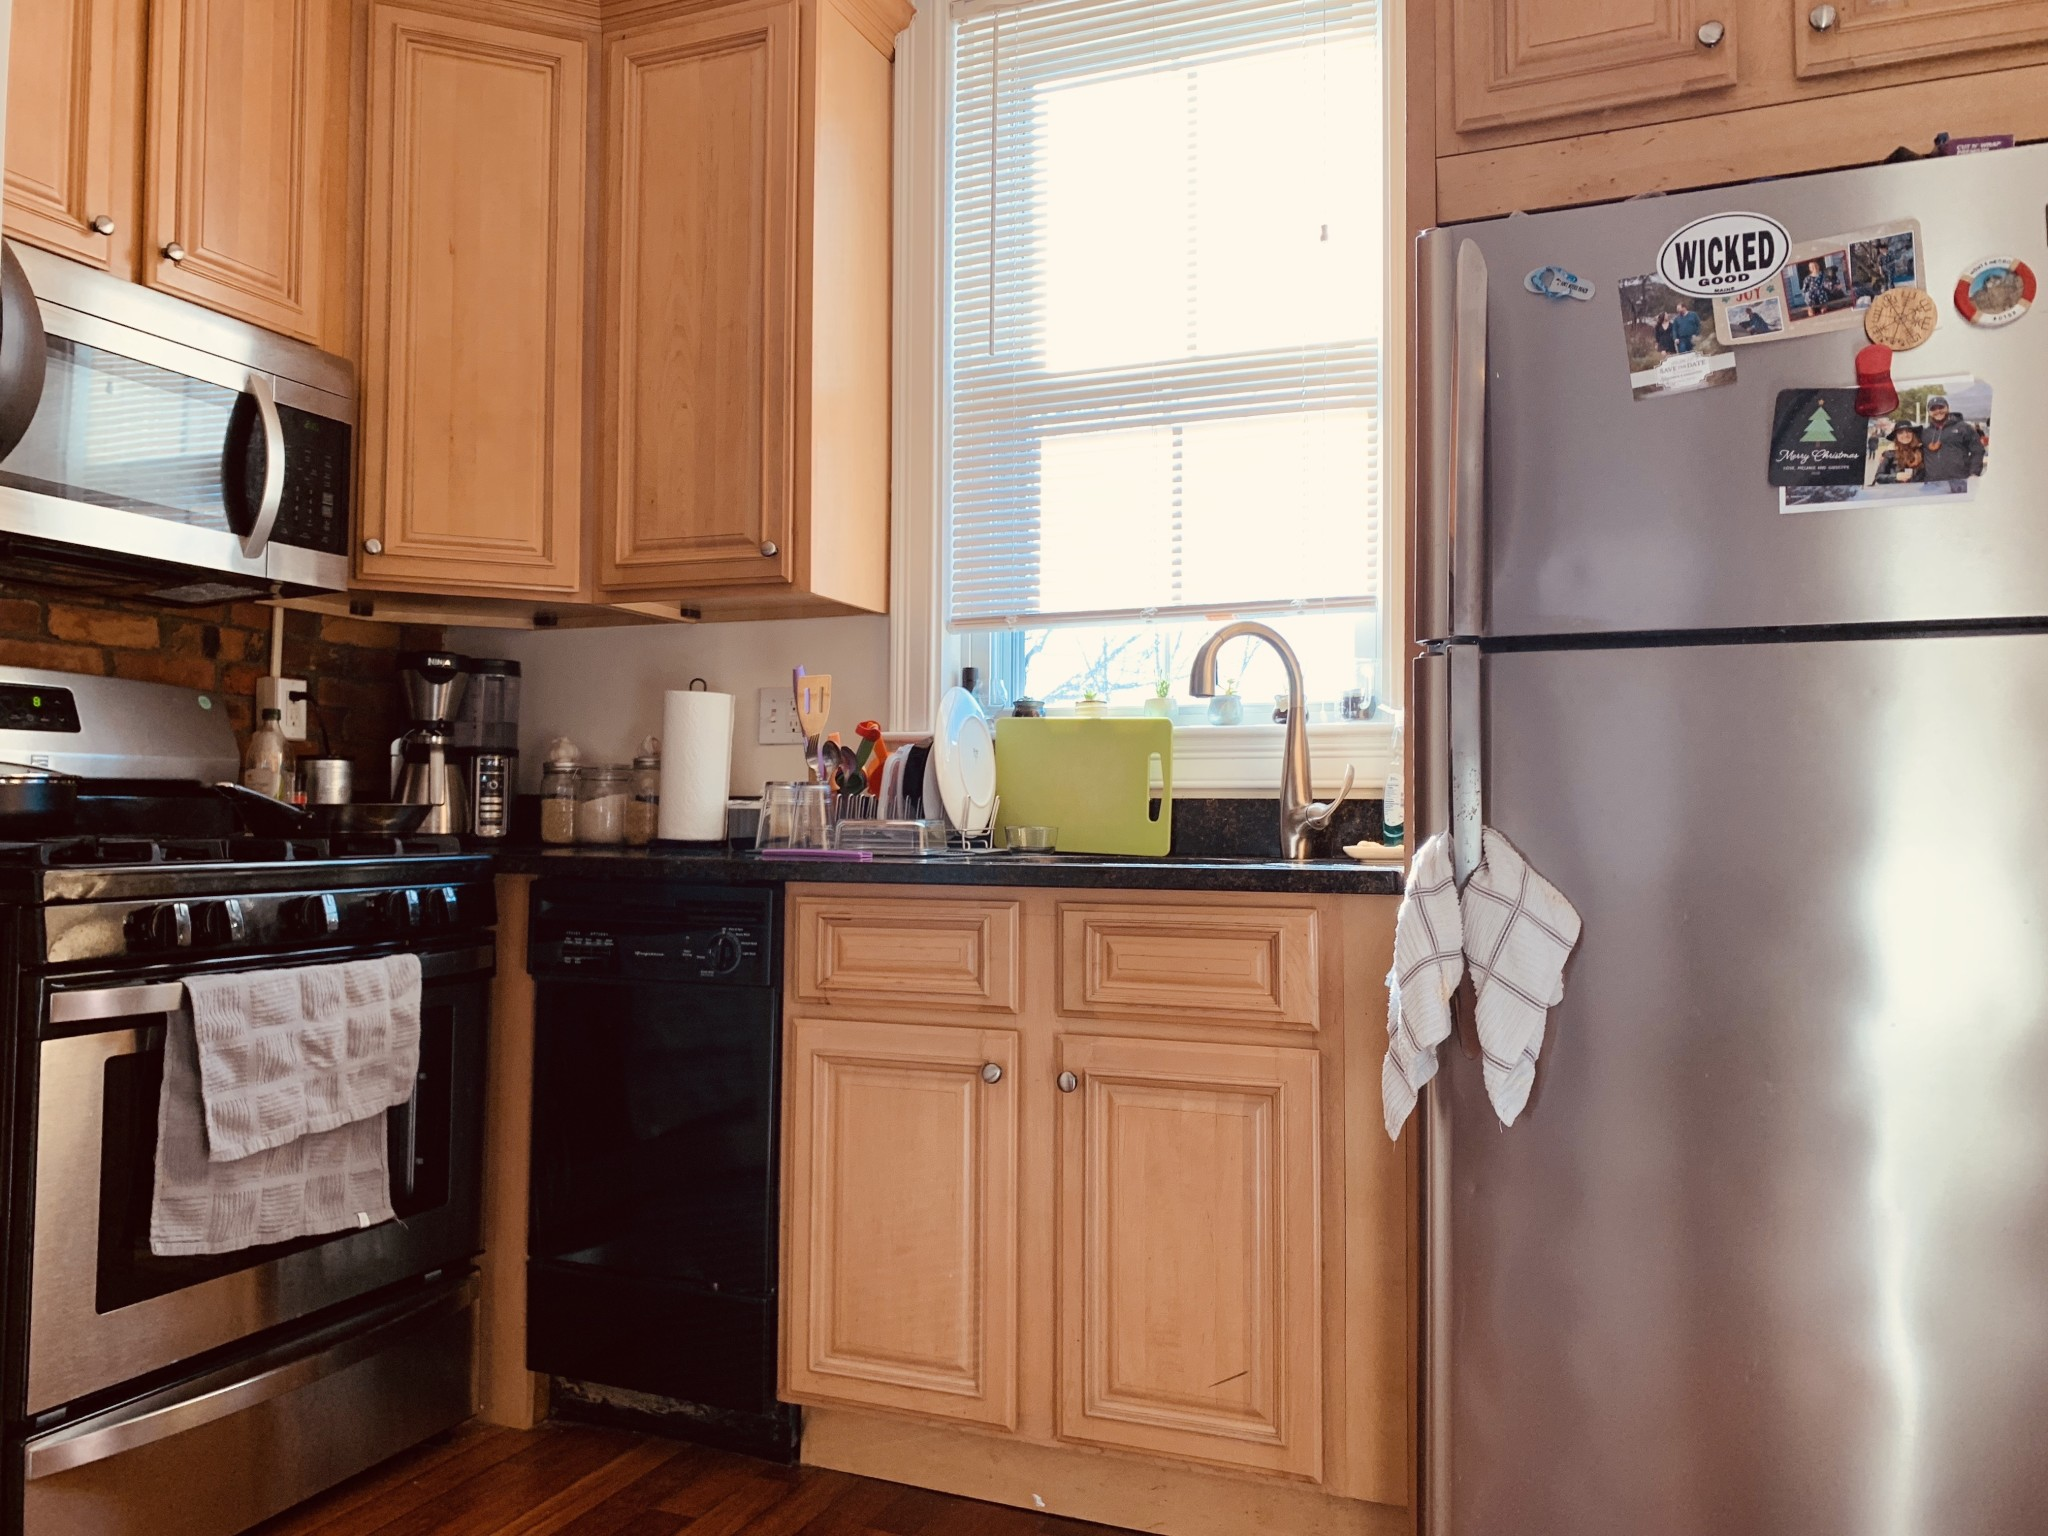 2 Beds, 1.5 Baths apartment in Boston, Jamaica Plain for $2,550